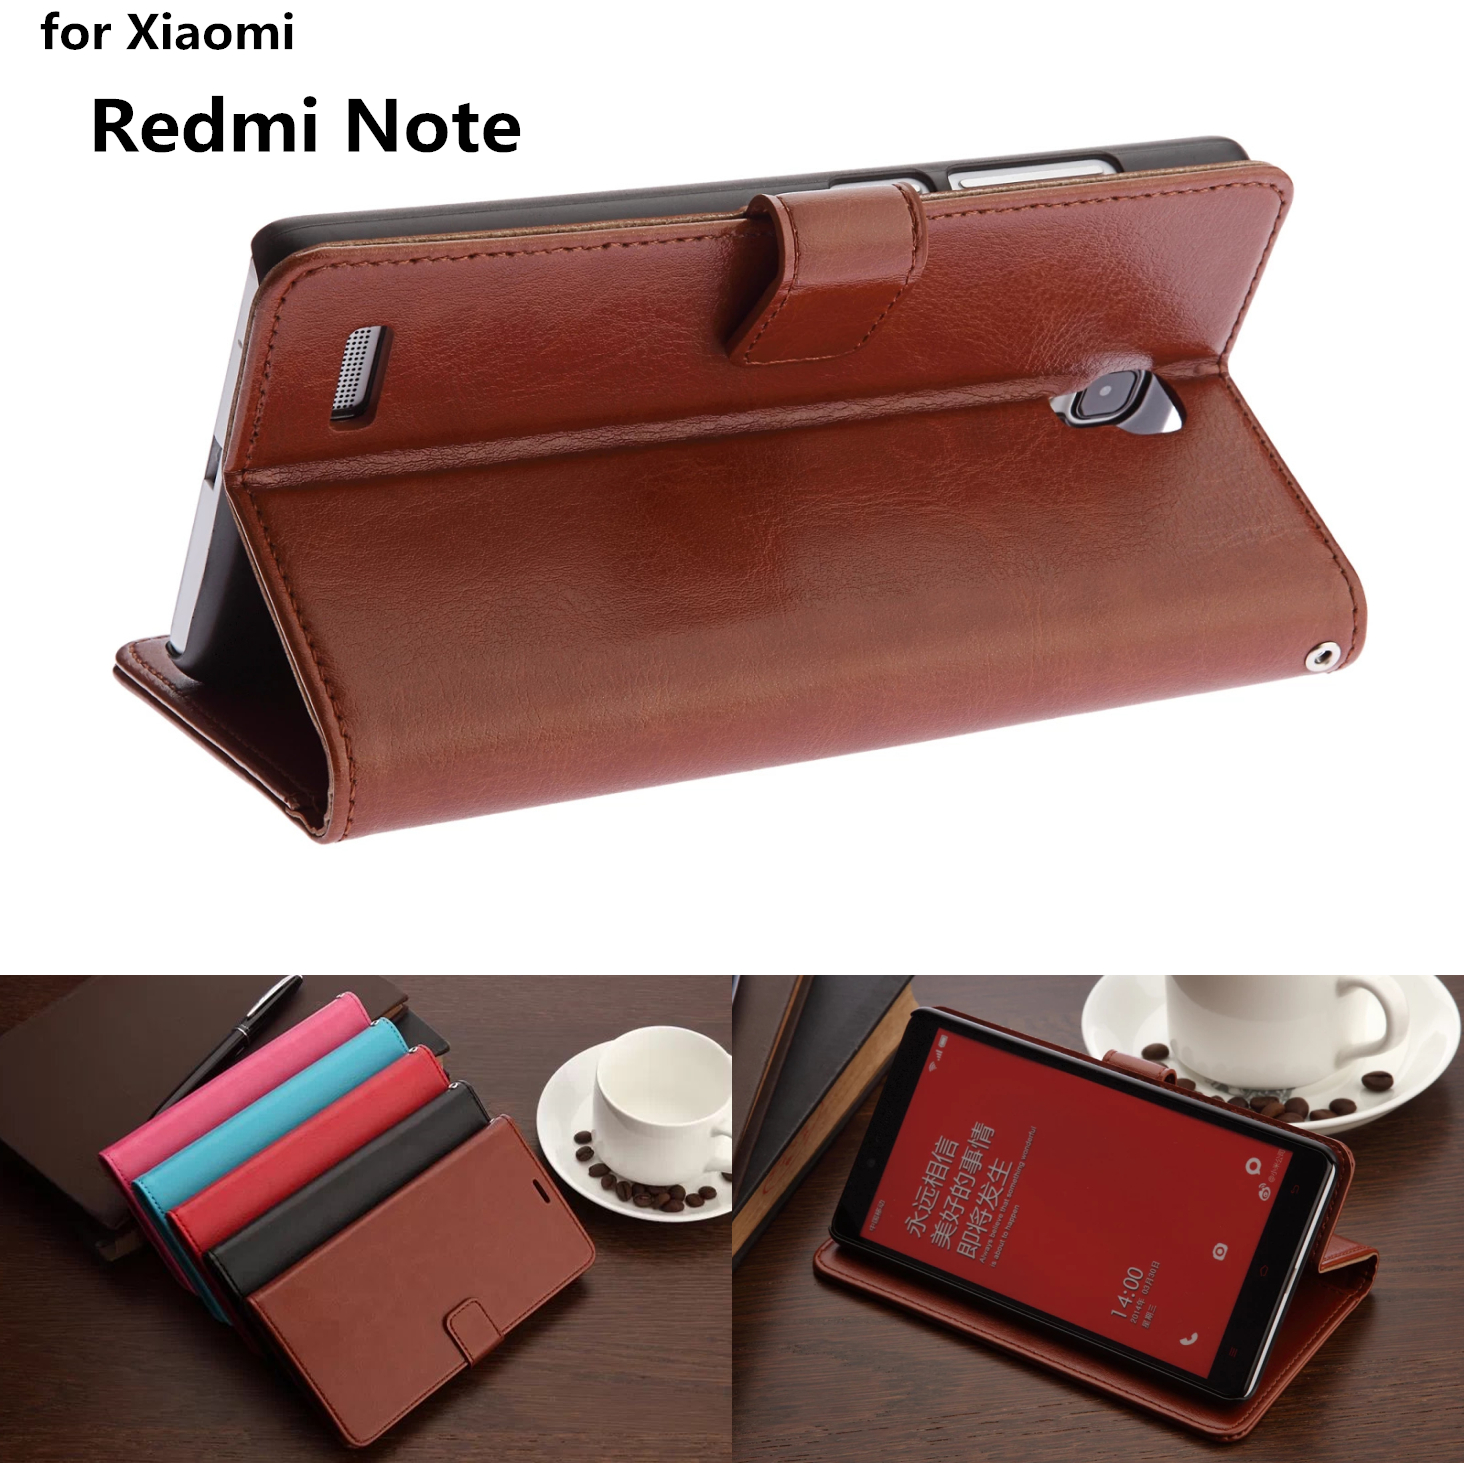 Xiaomi HM Note card holder cover case for Xiaomi Redmi Note 1 LTE 4G leather phone cas